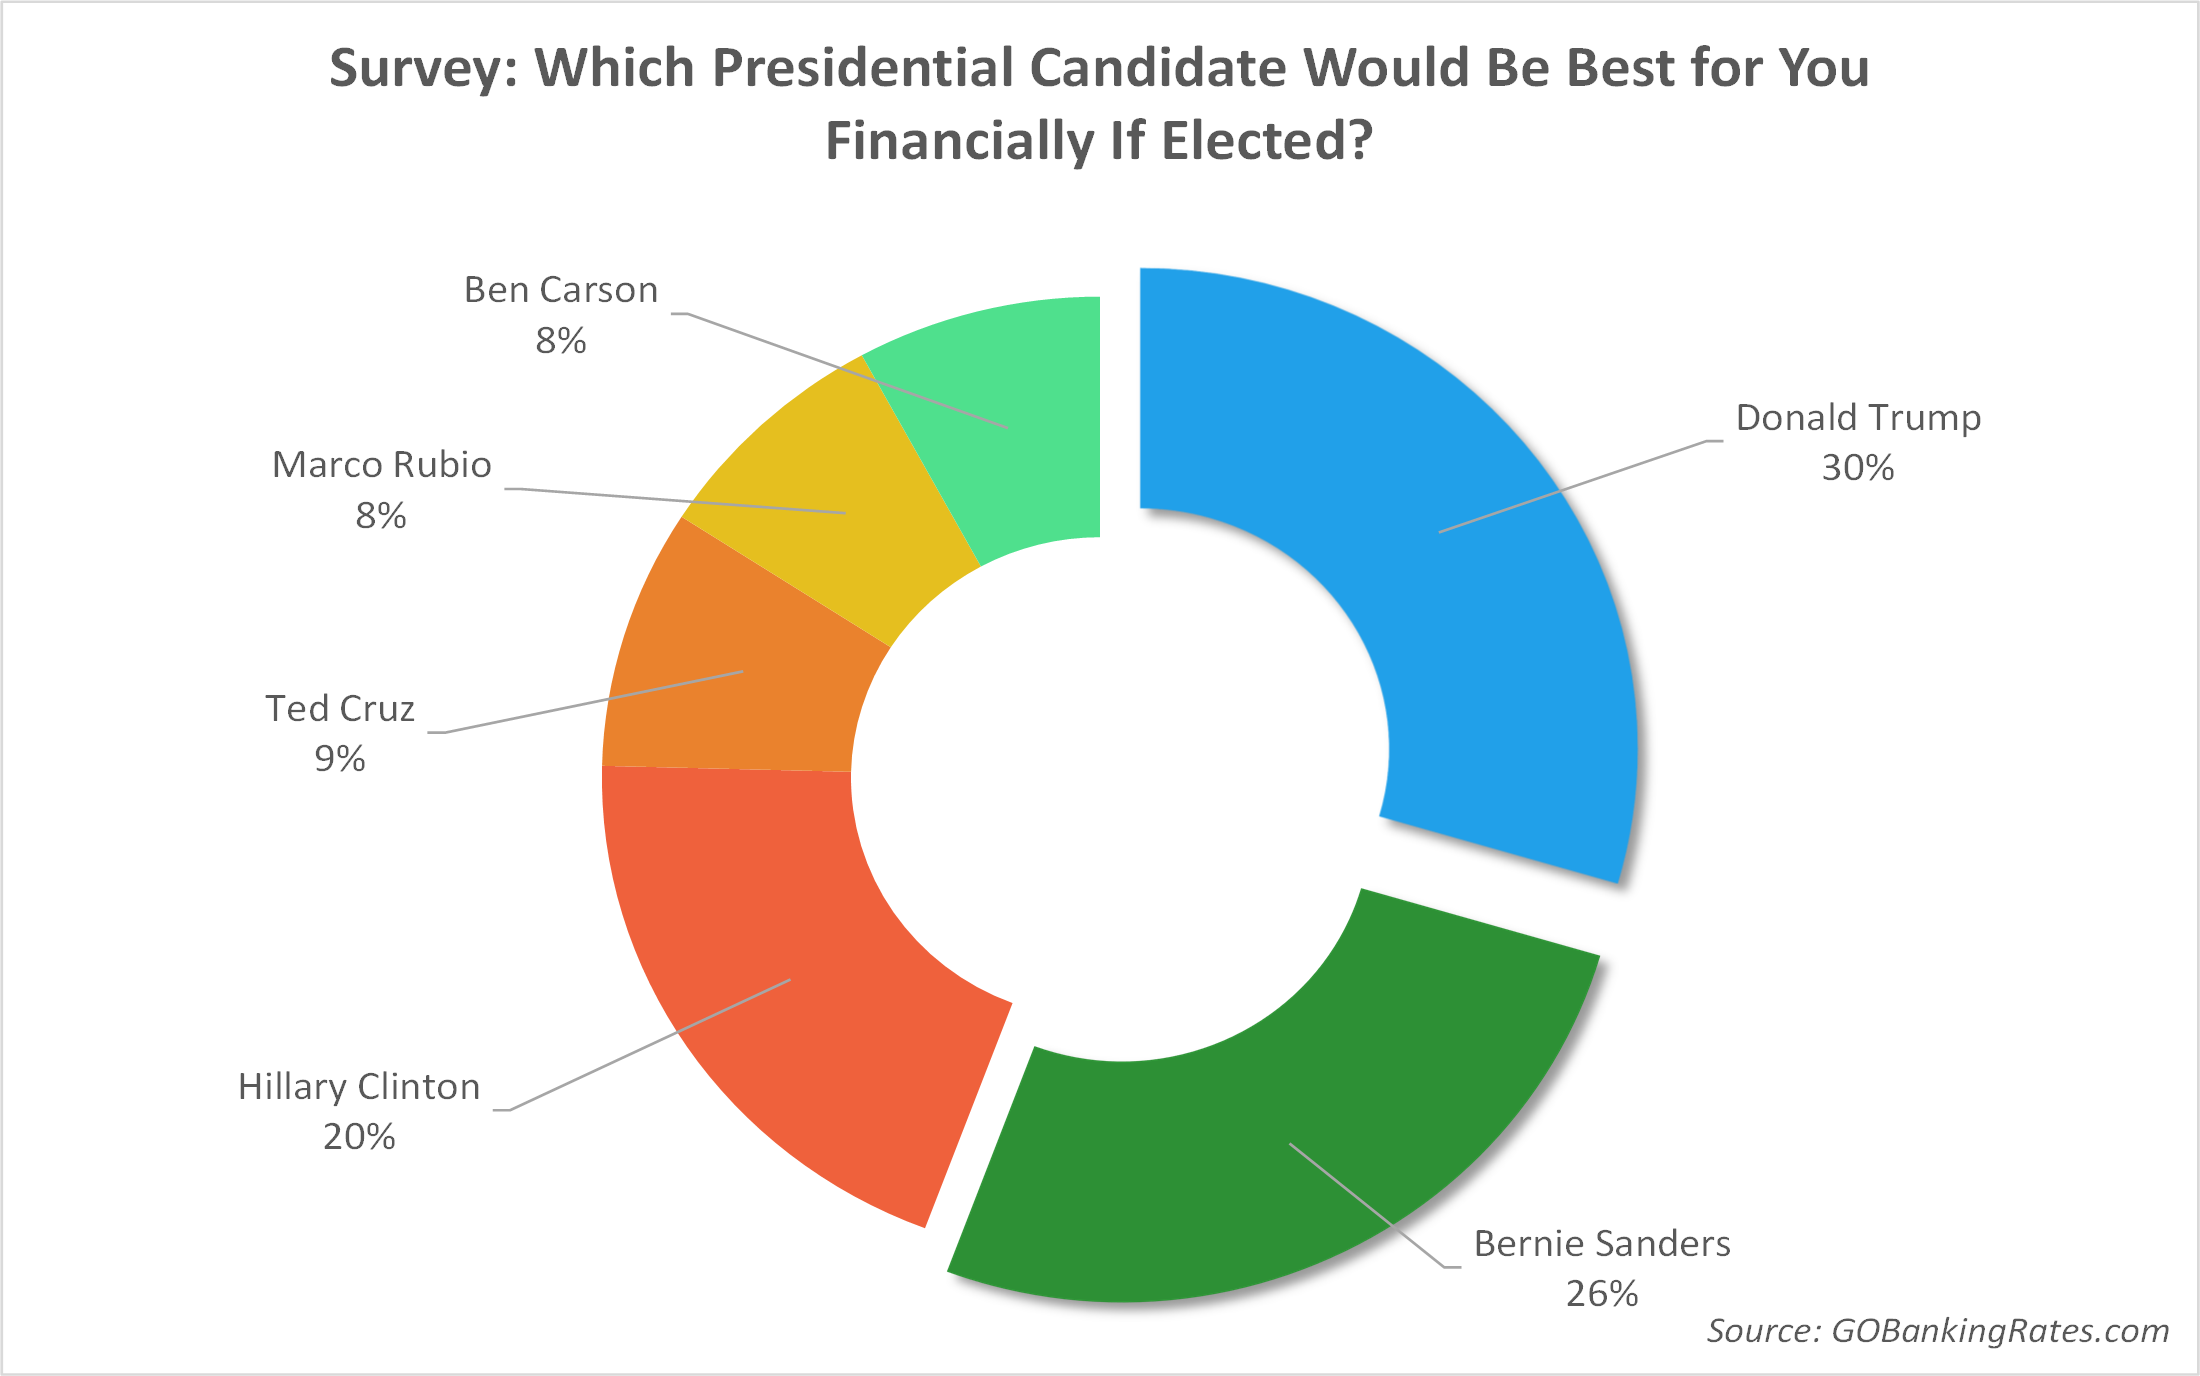 Survey: Which Presidential Candidate Would Be Best for You Financially If Elected?